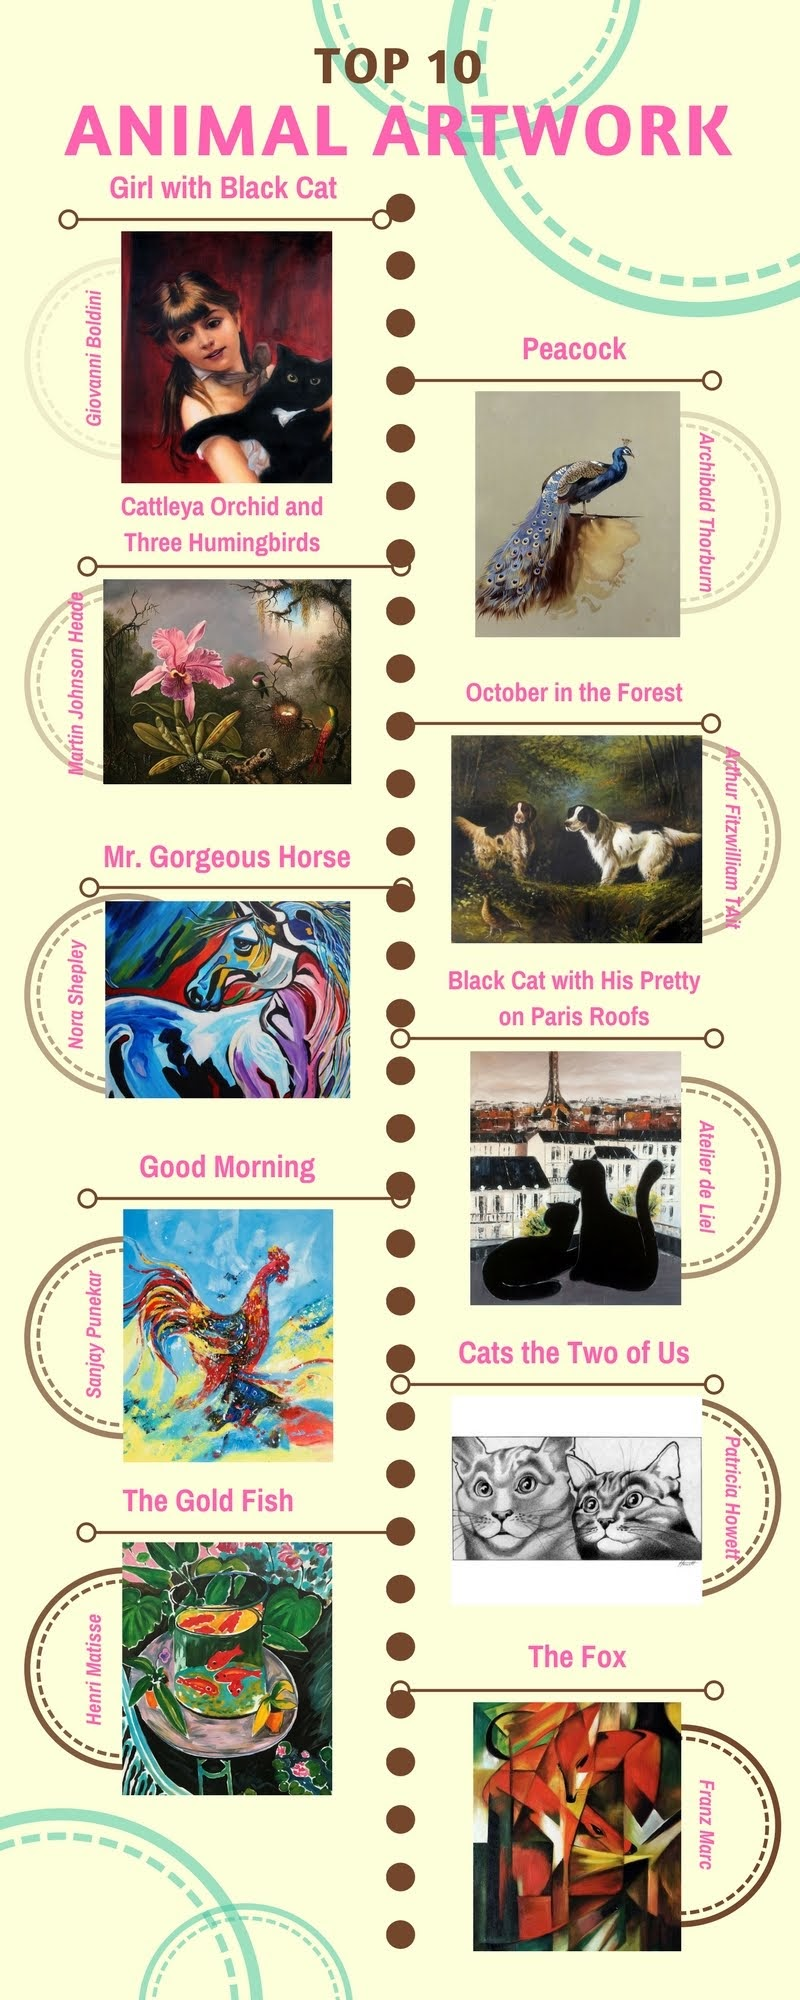 Top 10 Animal Artwork #Infographic